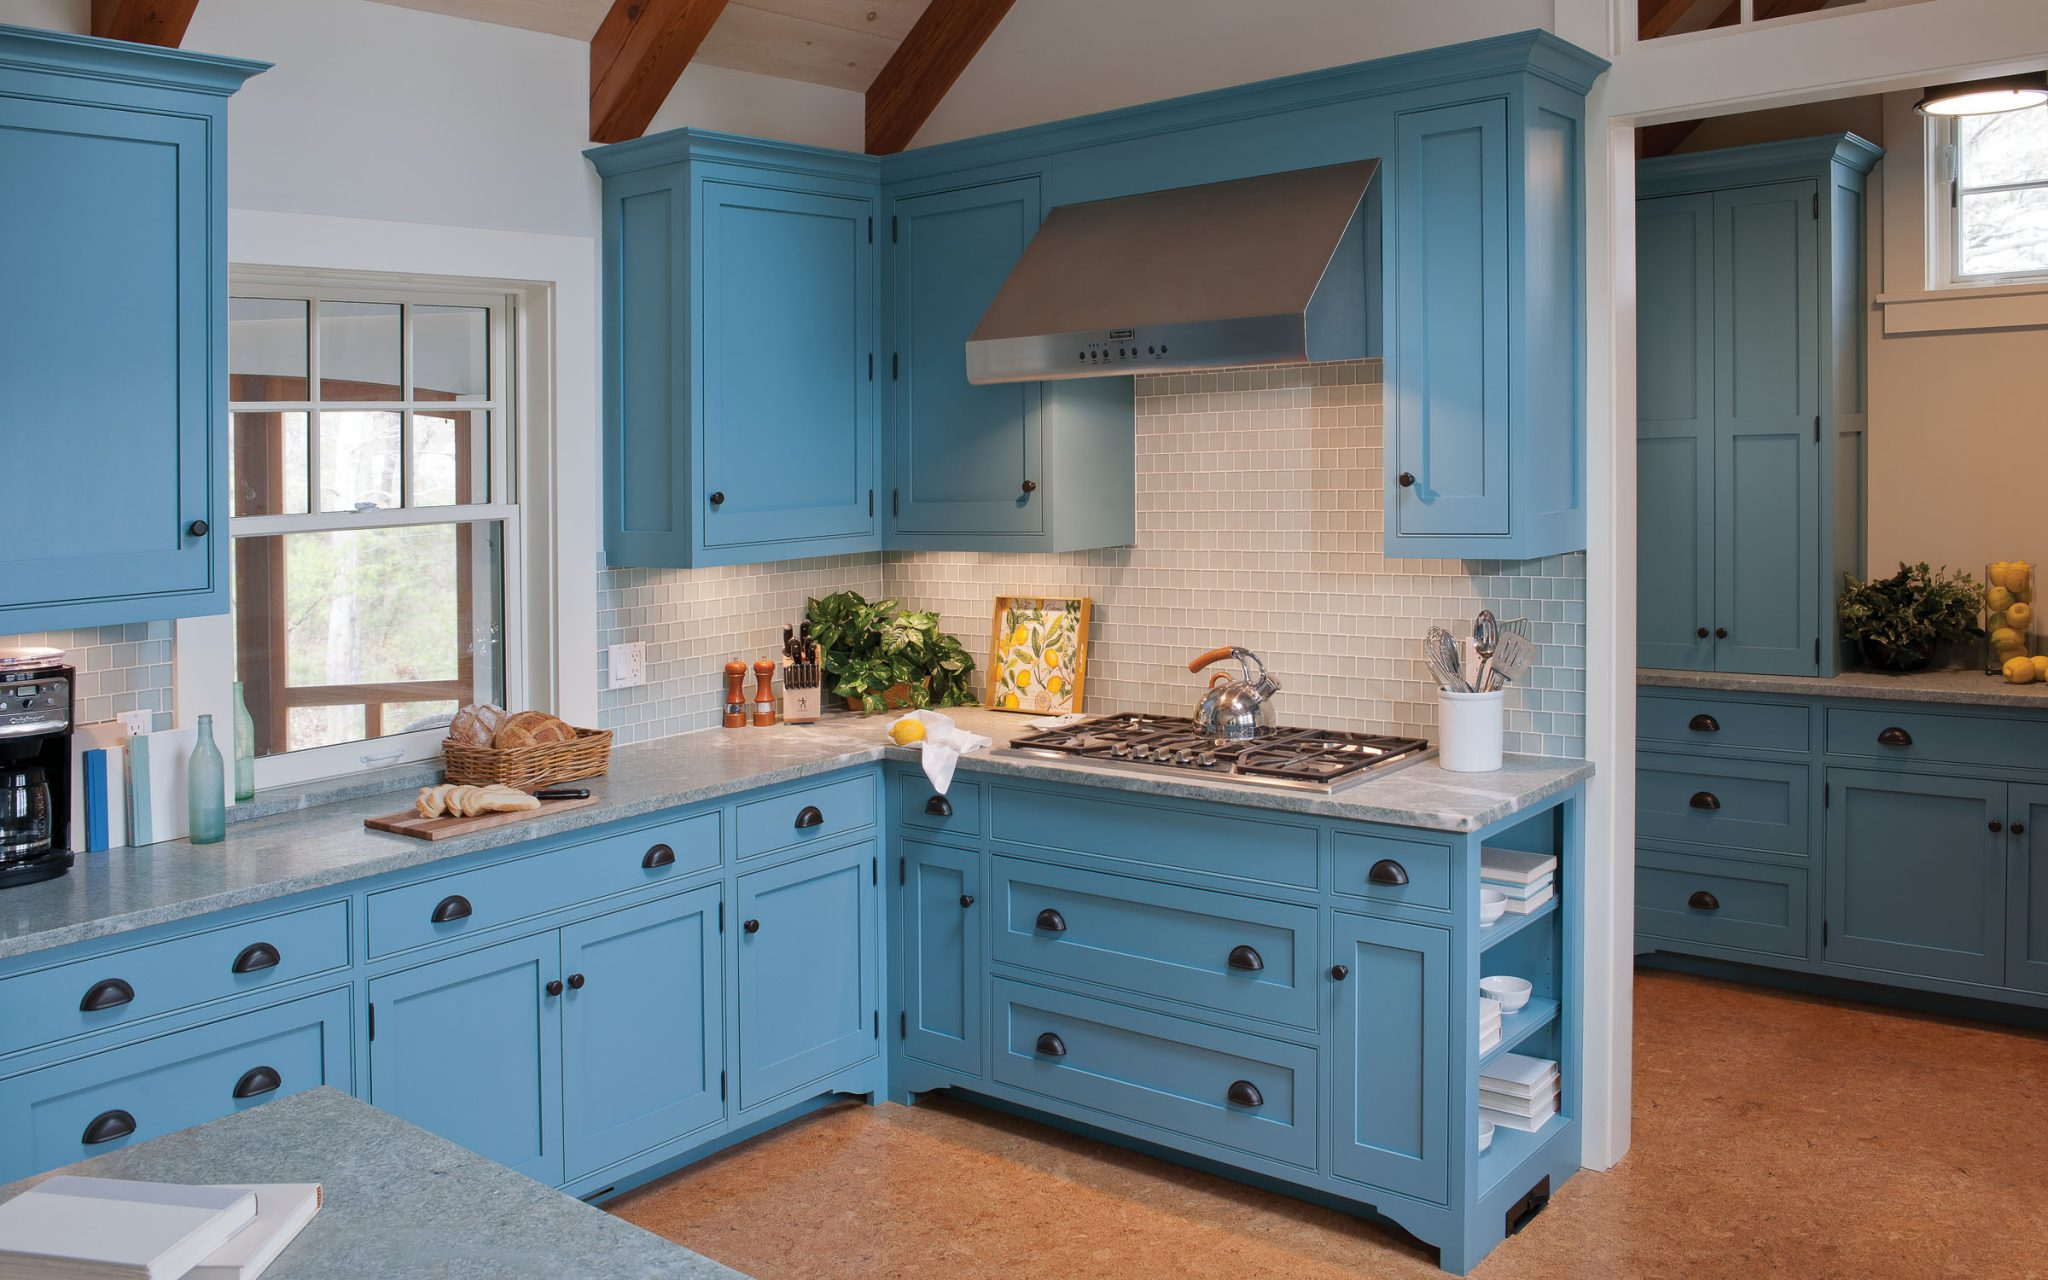 Colorful Kitchen Design Ideas from Boston Interior Designer Elizabeths Swartz Interiors.